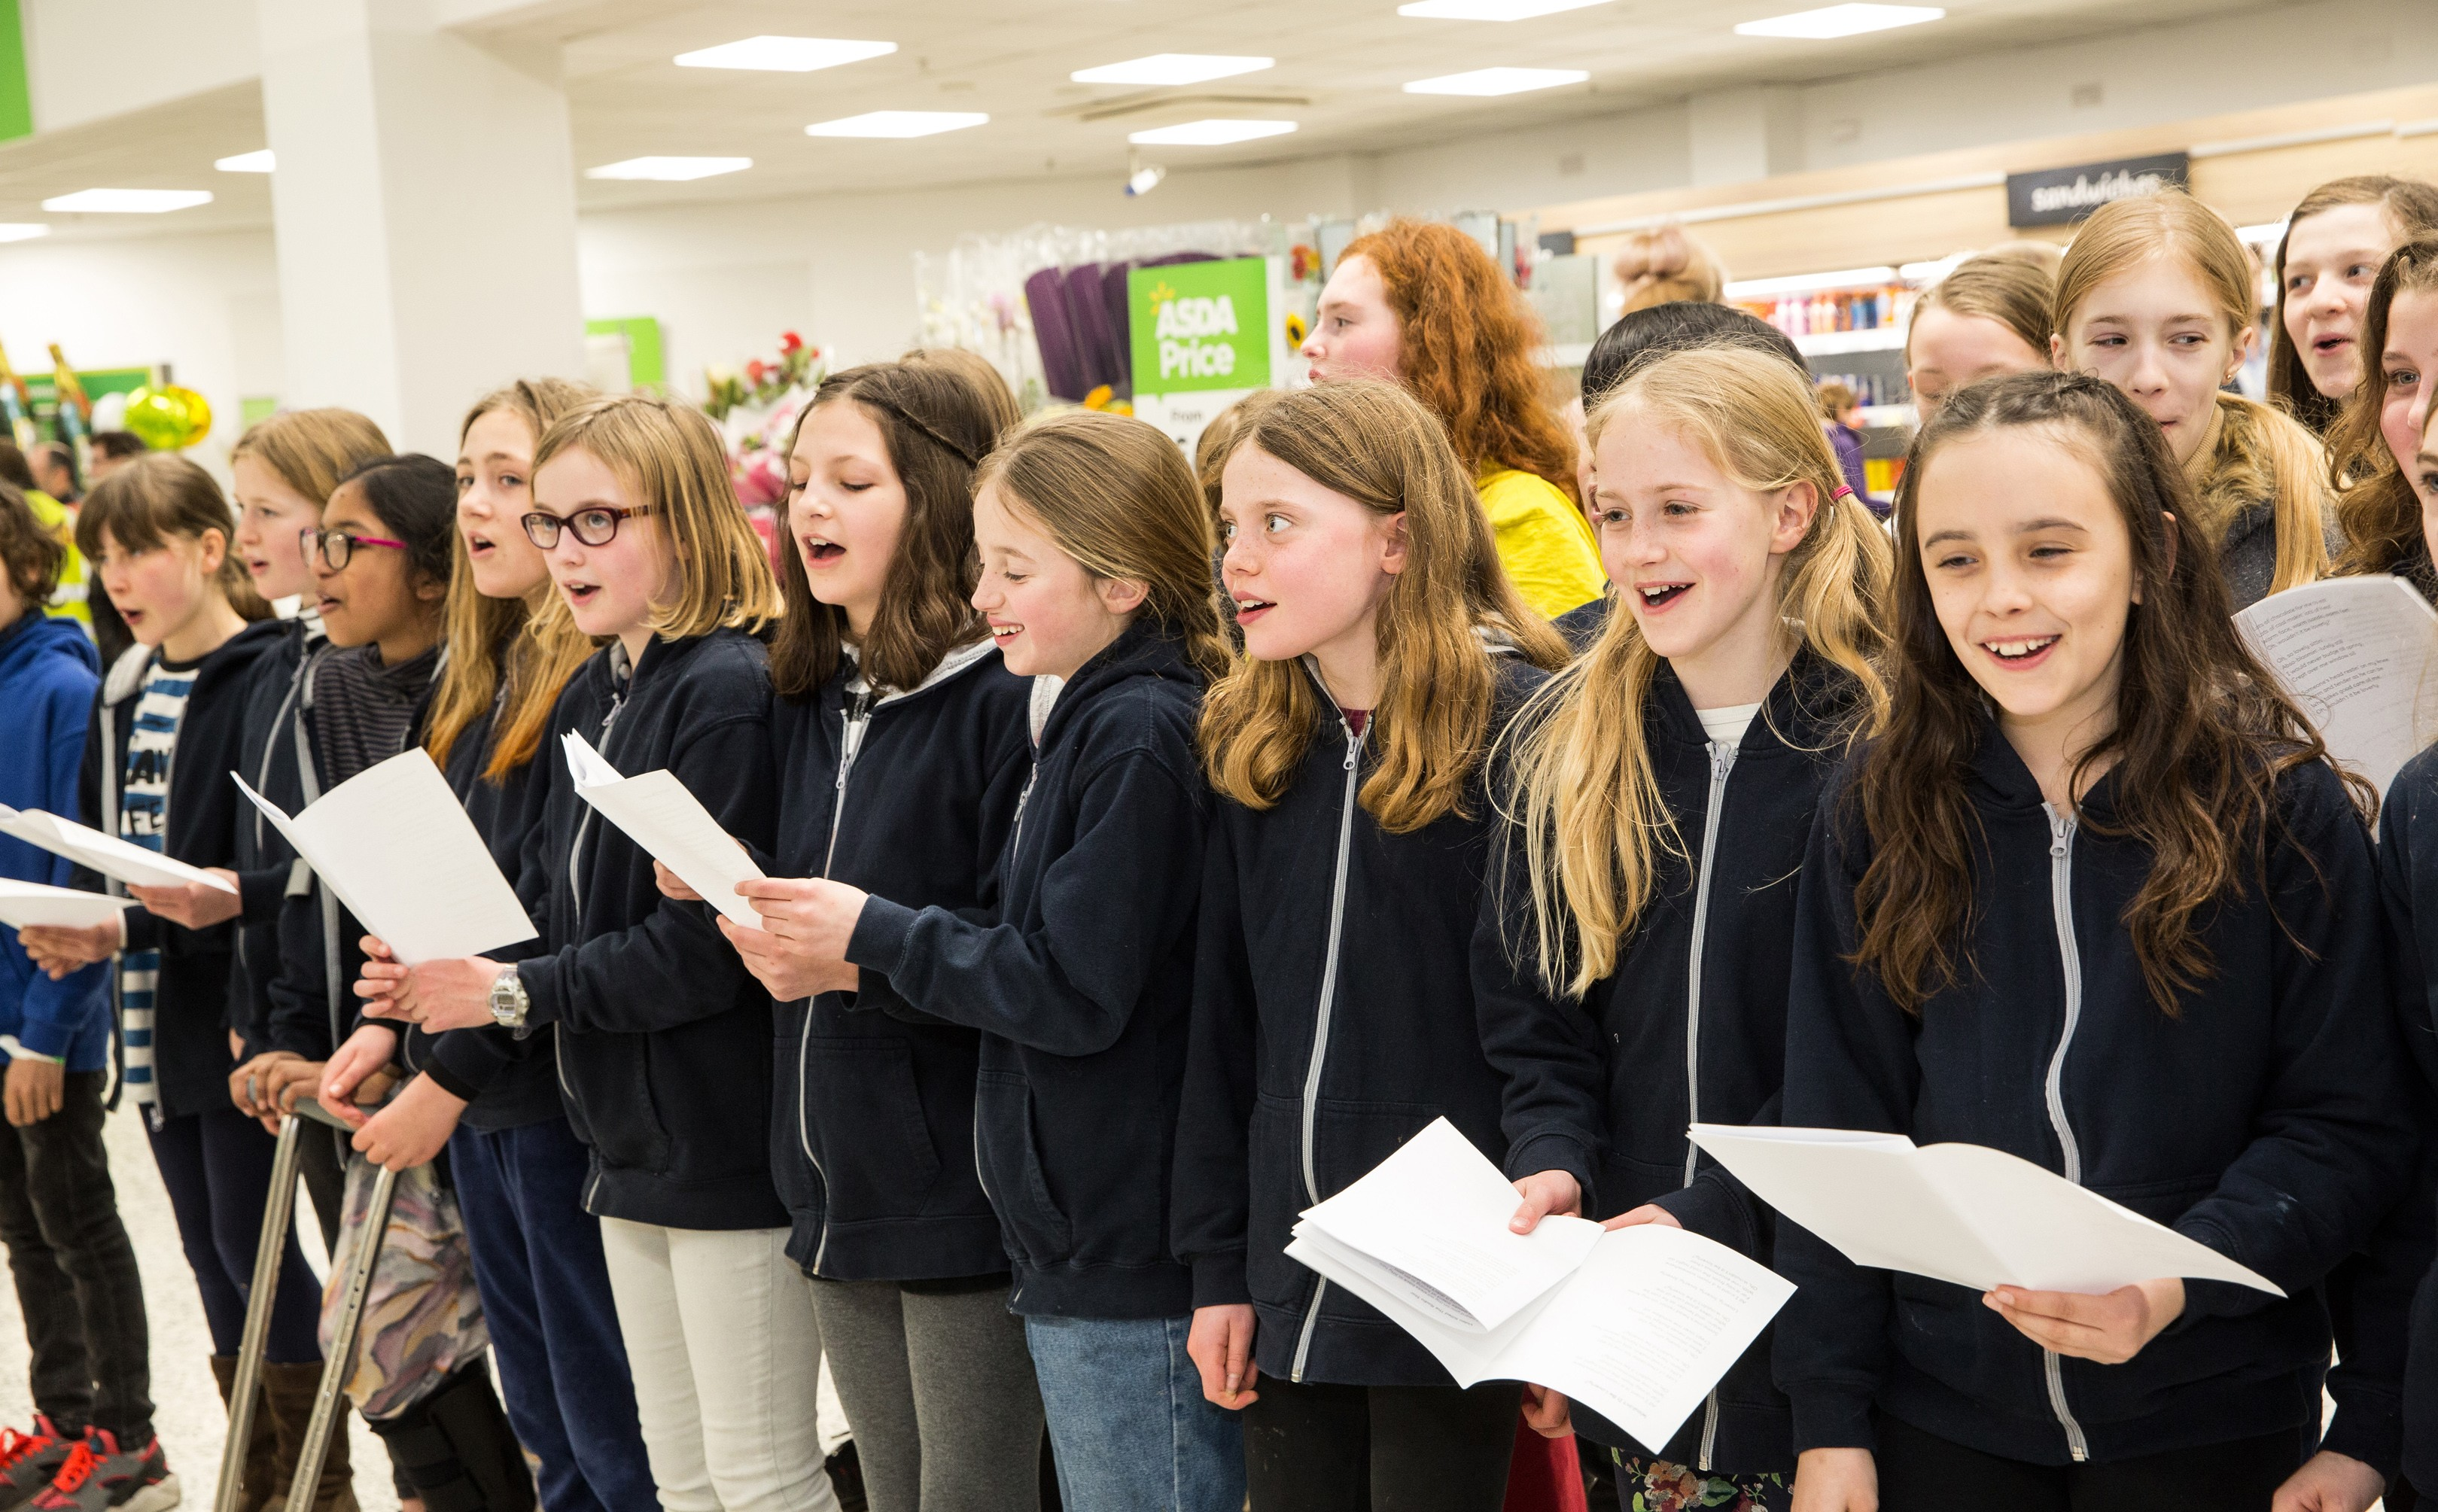 Pupils from Hotwells Primary School sang for customers